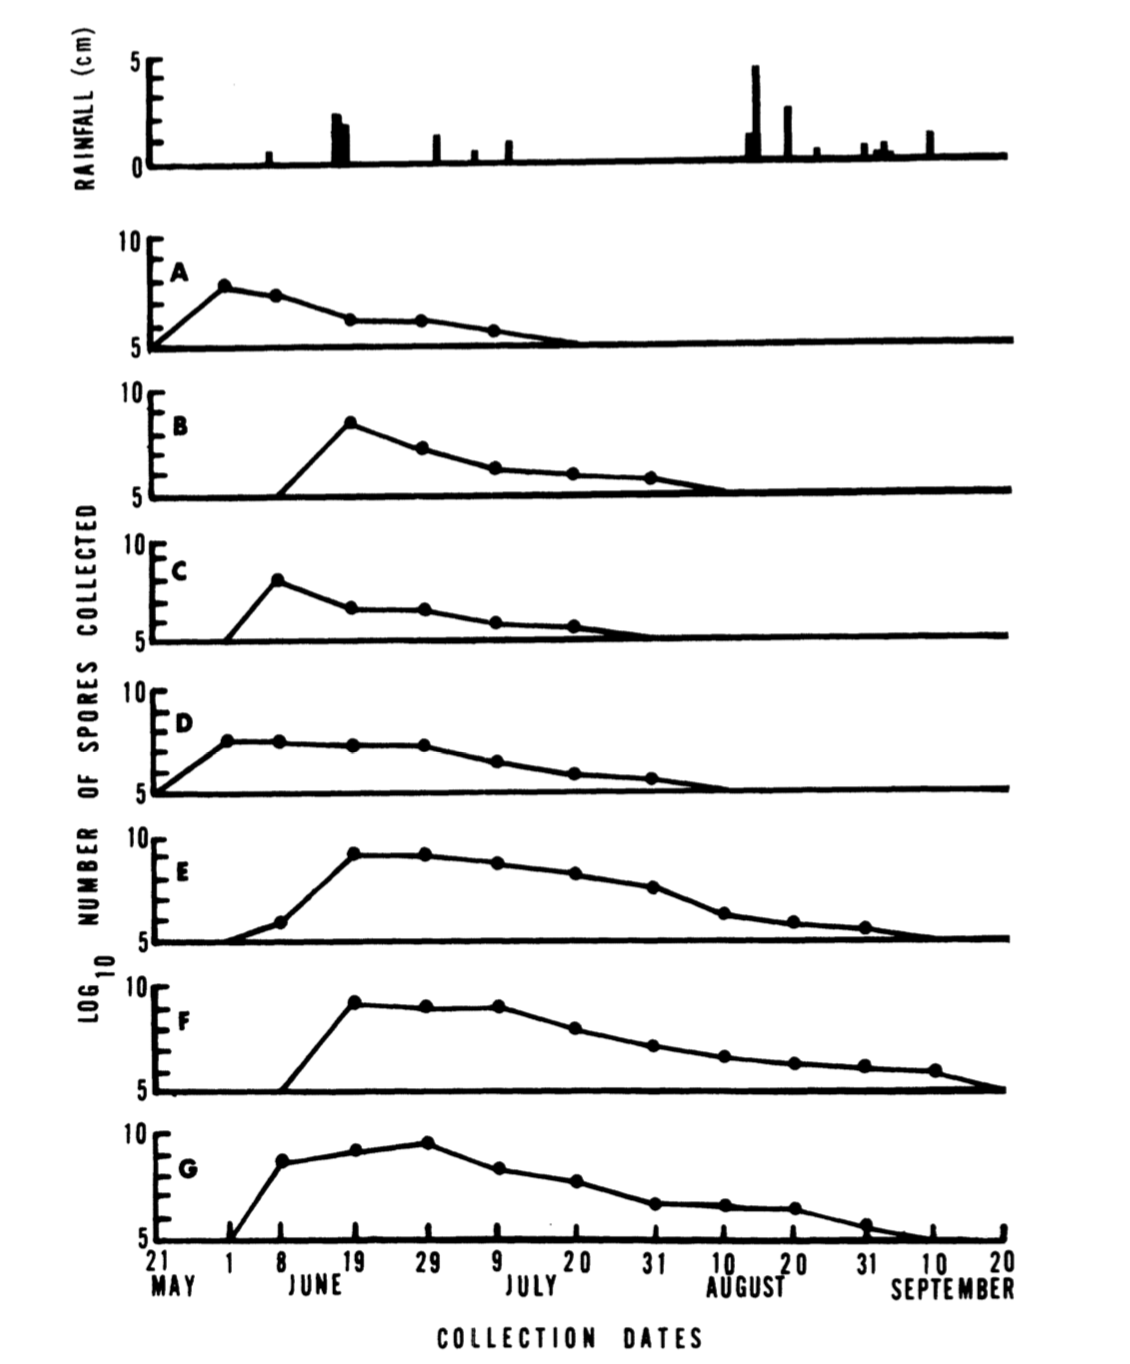 Spore dispersal timing in 7 specimens of veiled polypores. The species is most active in the dryer portion of the year. Harrington 1980 .